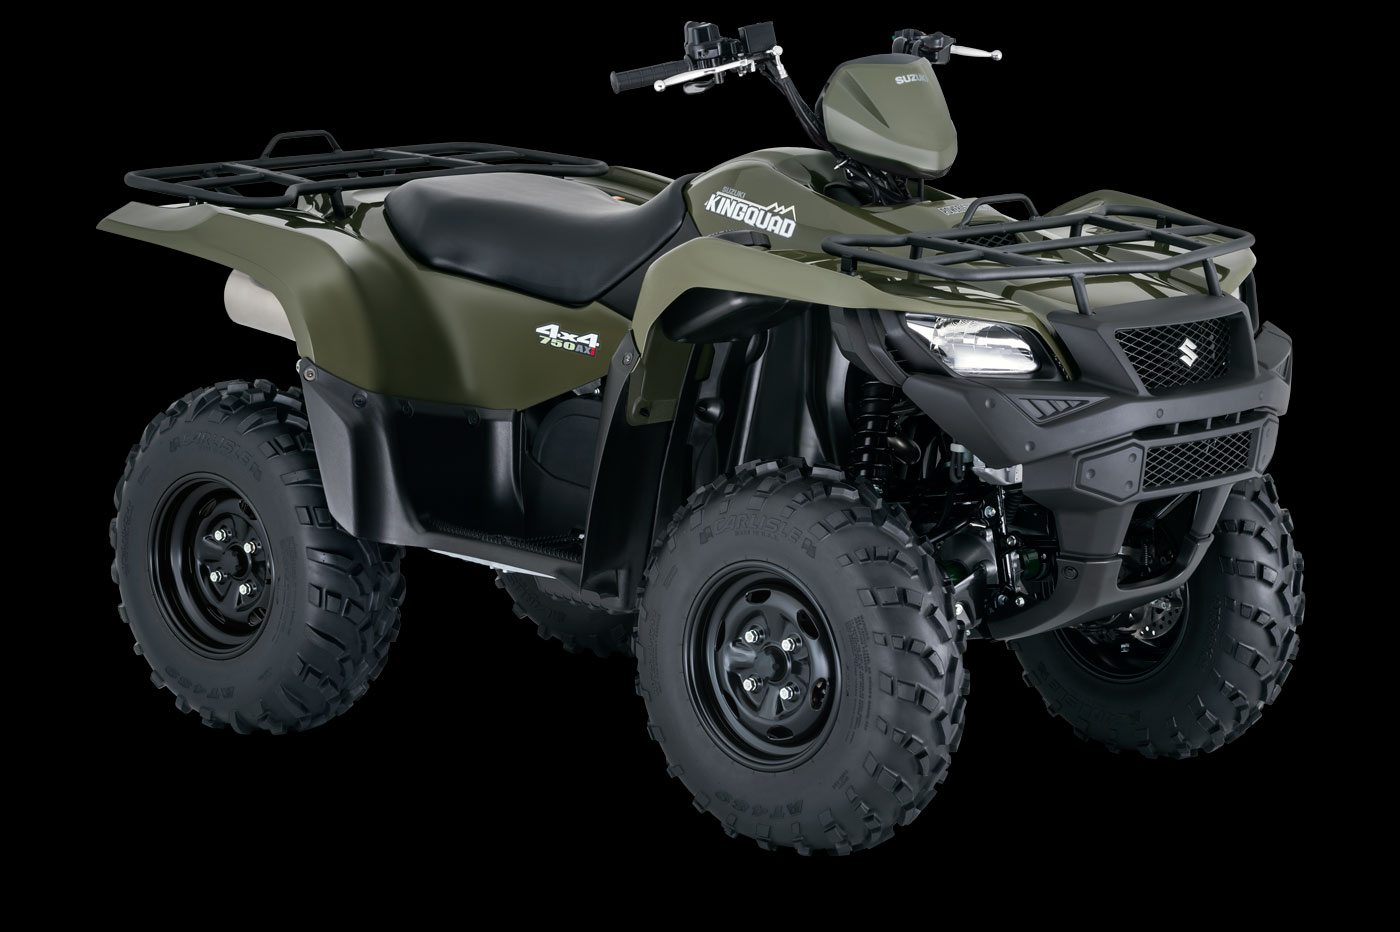 2016 Suzuki KingQuad Review – ATV Scene Magazine - Page 2